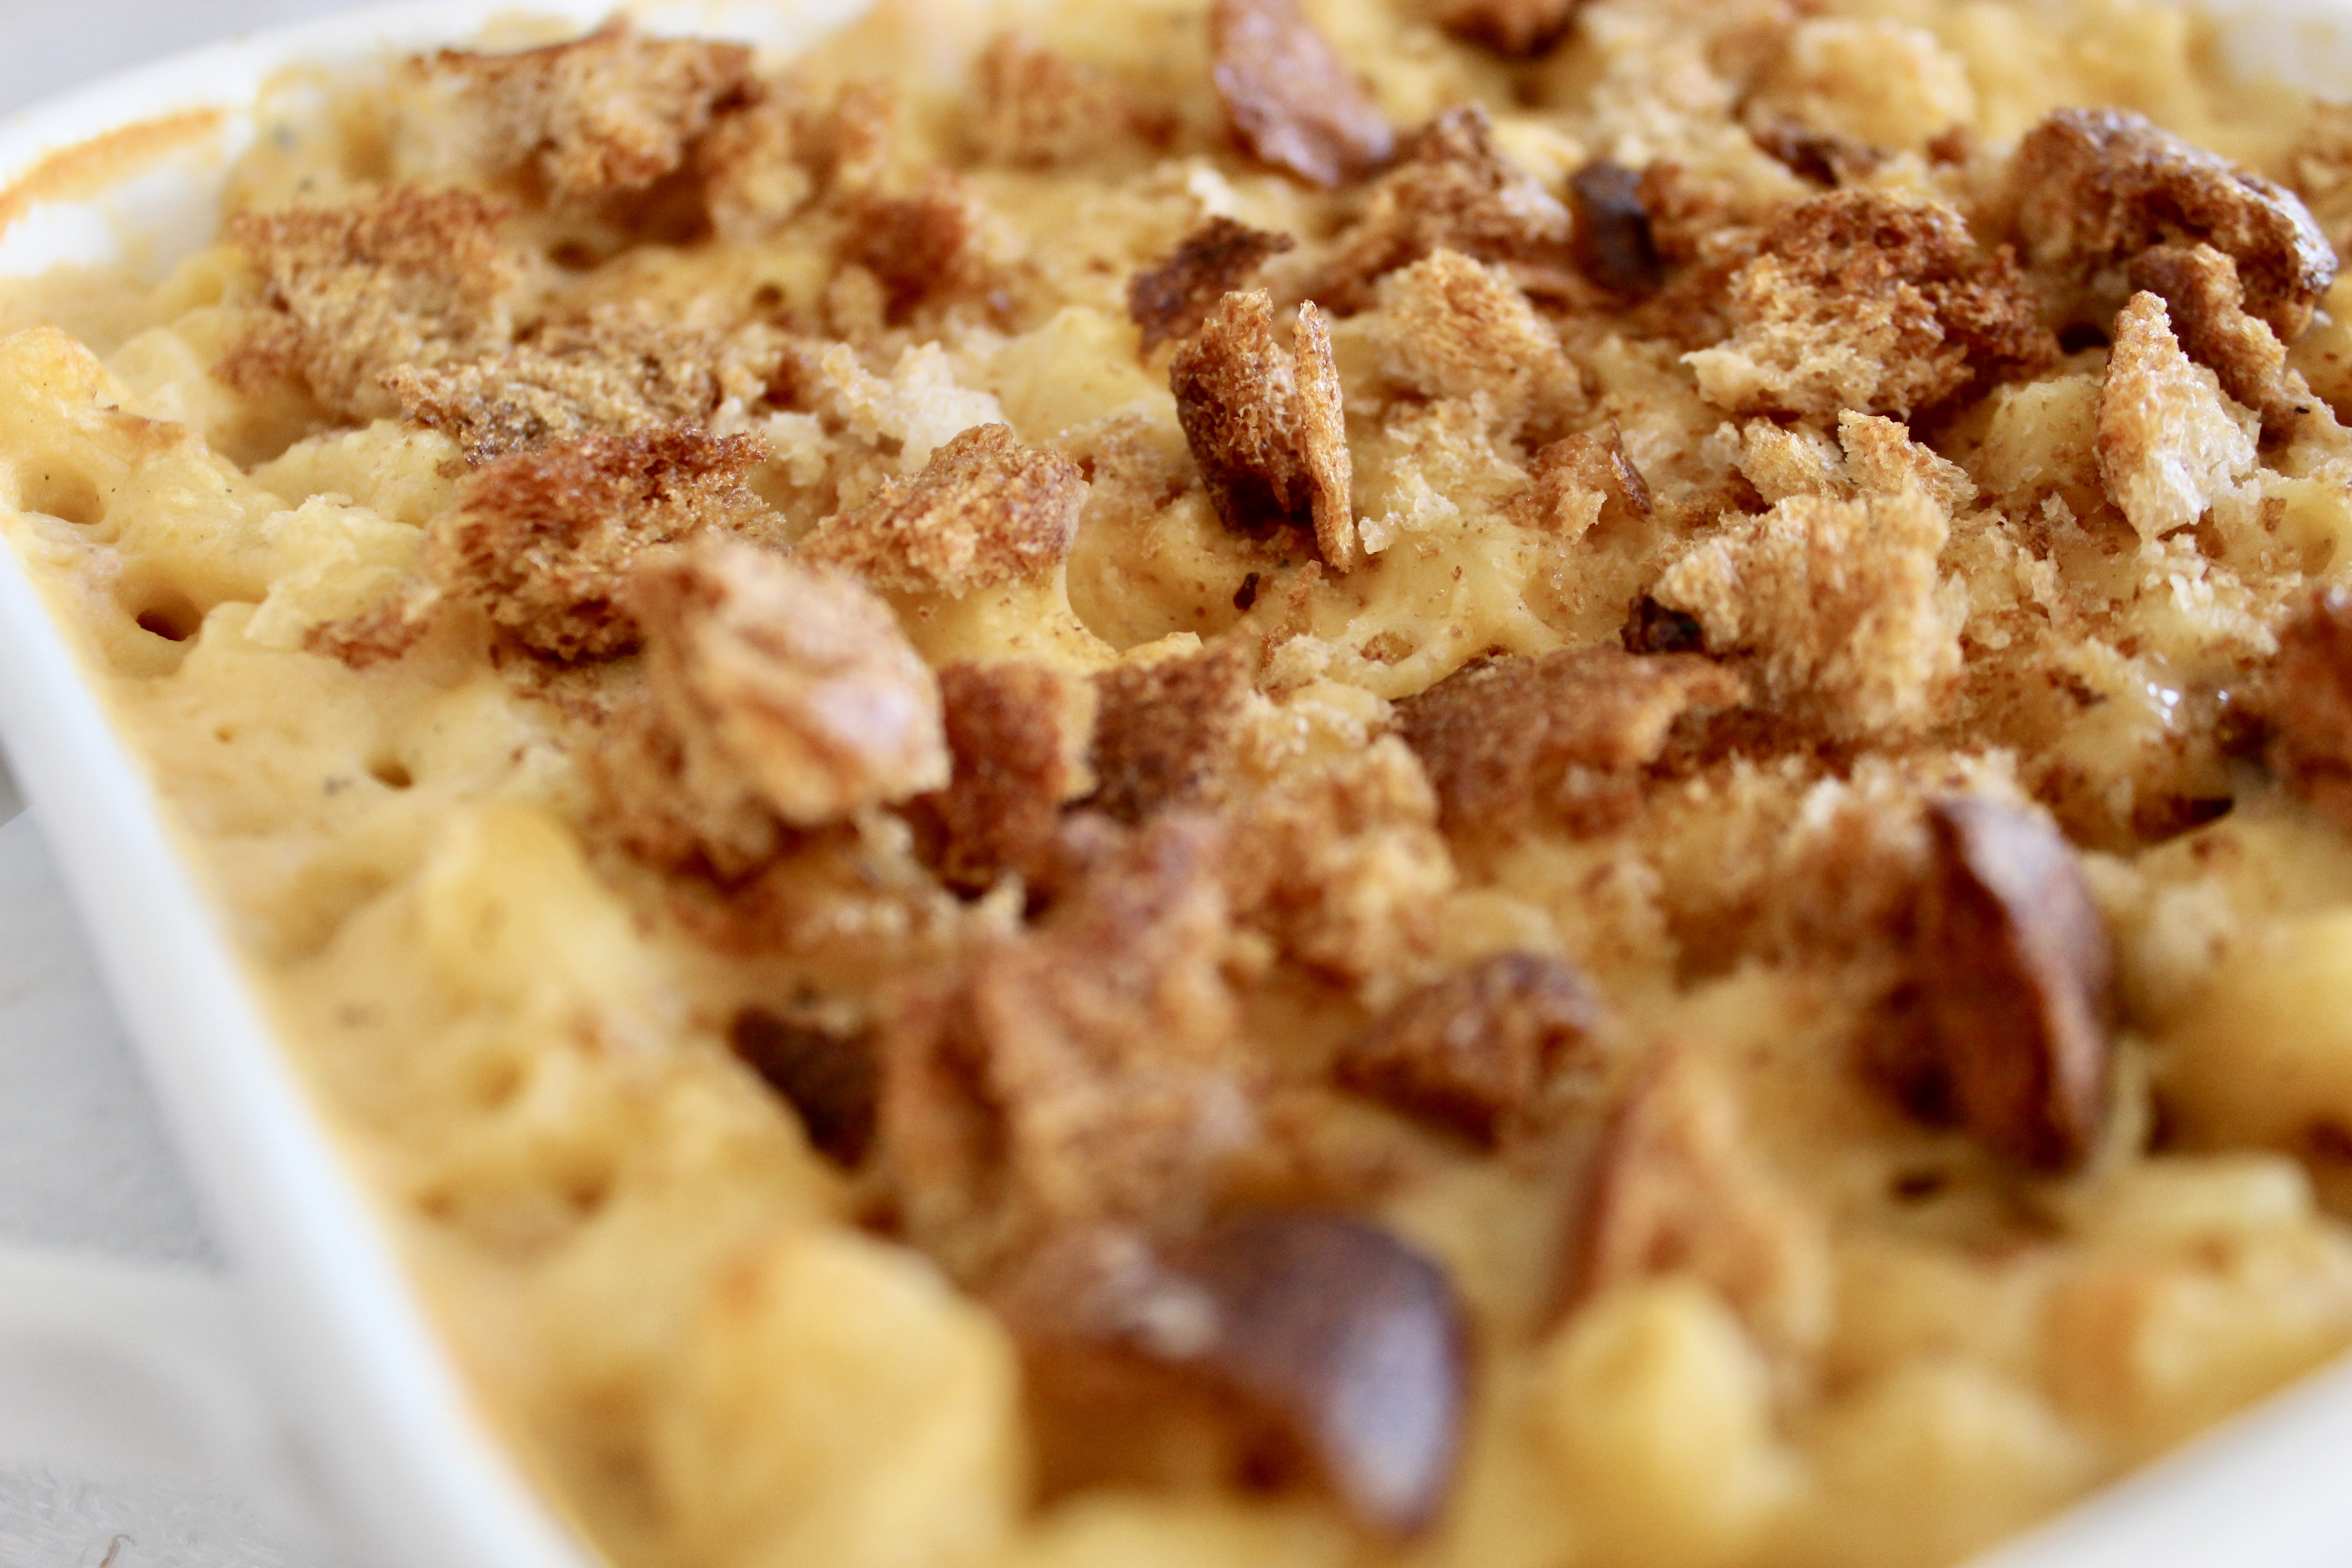 Sharp cheddar, muenster, and asiago makes for an indulgent, three cheese Homemade Breadcrumb Baked Mac and Cheese. Some simple healthy recipe swaps help reduce the fat, maintain the protein and increase the fiber content of this classic recipe.